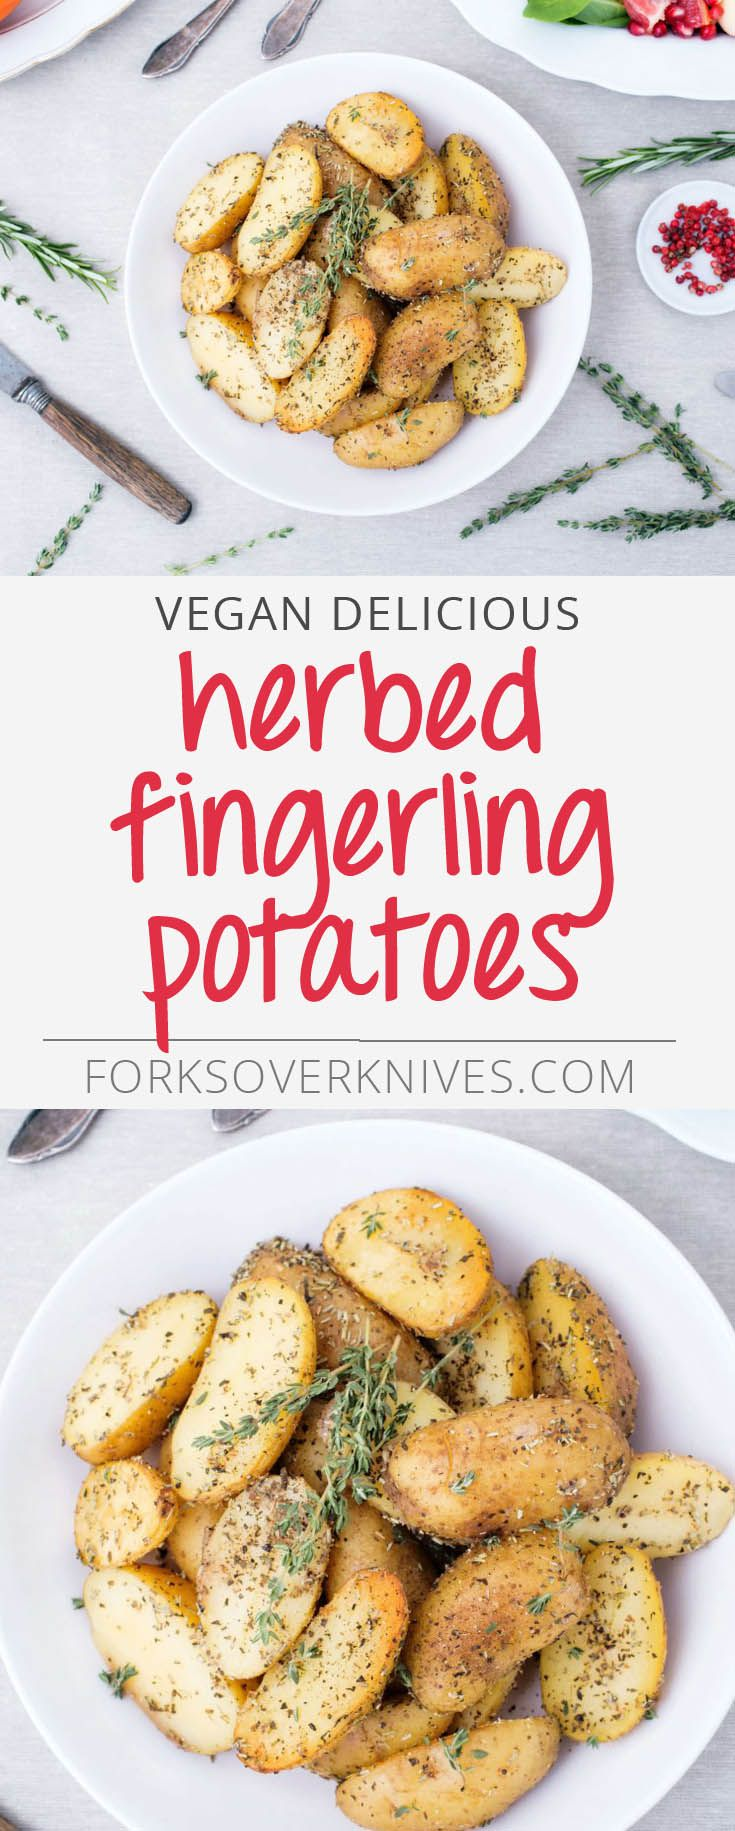 Herbed Fingerling Potatoes